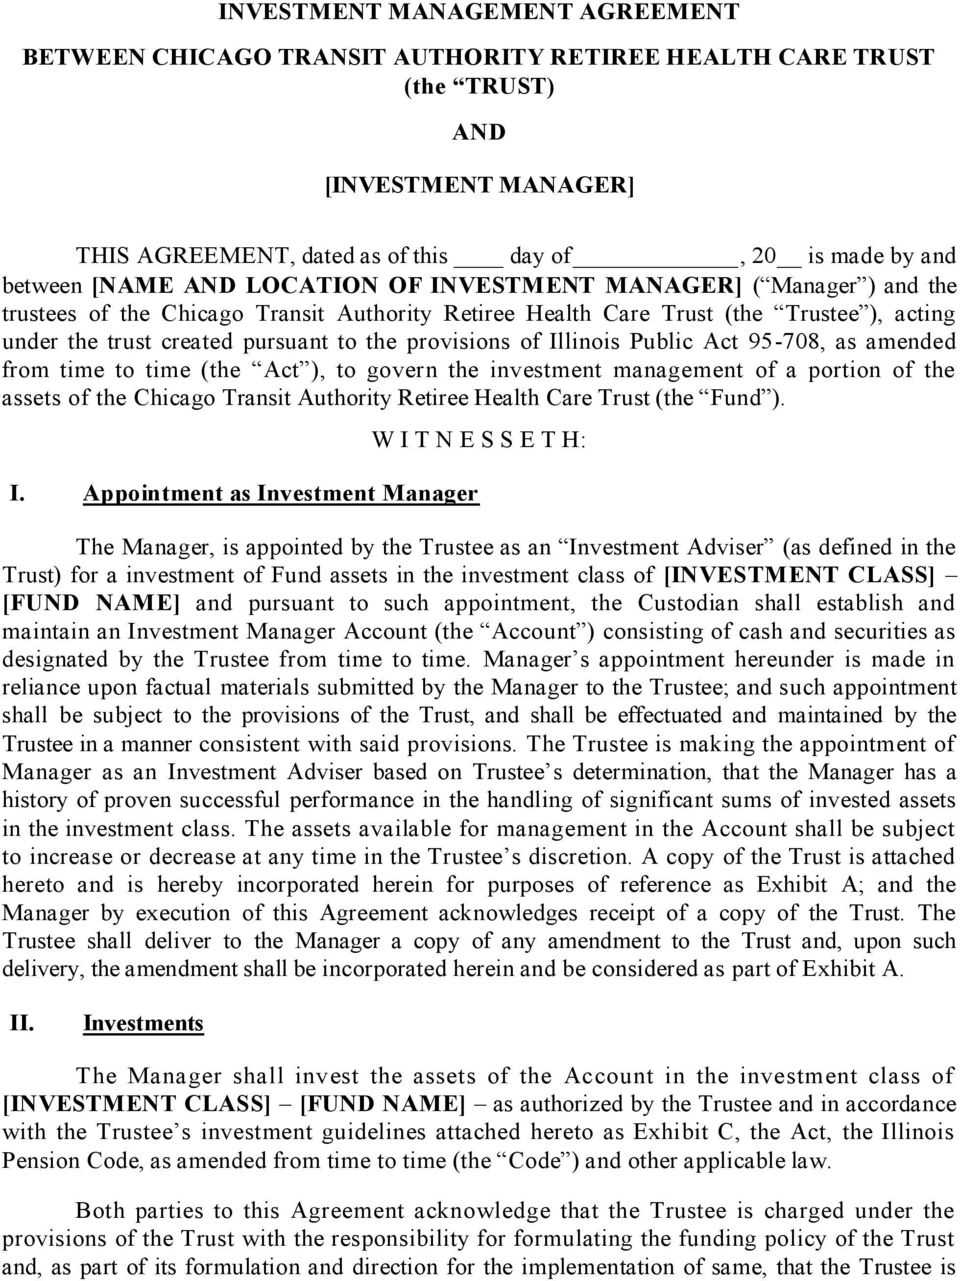 Investment Management Agreement Investment Management Agreement Between Chicago Transit Authority